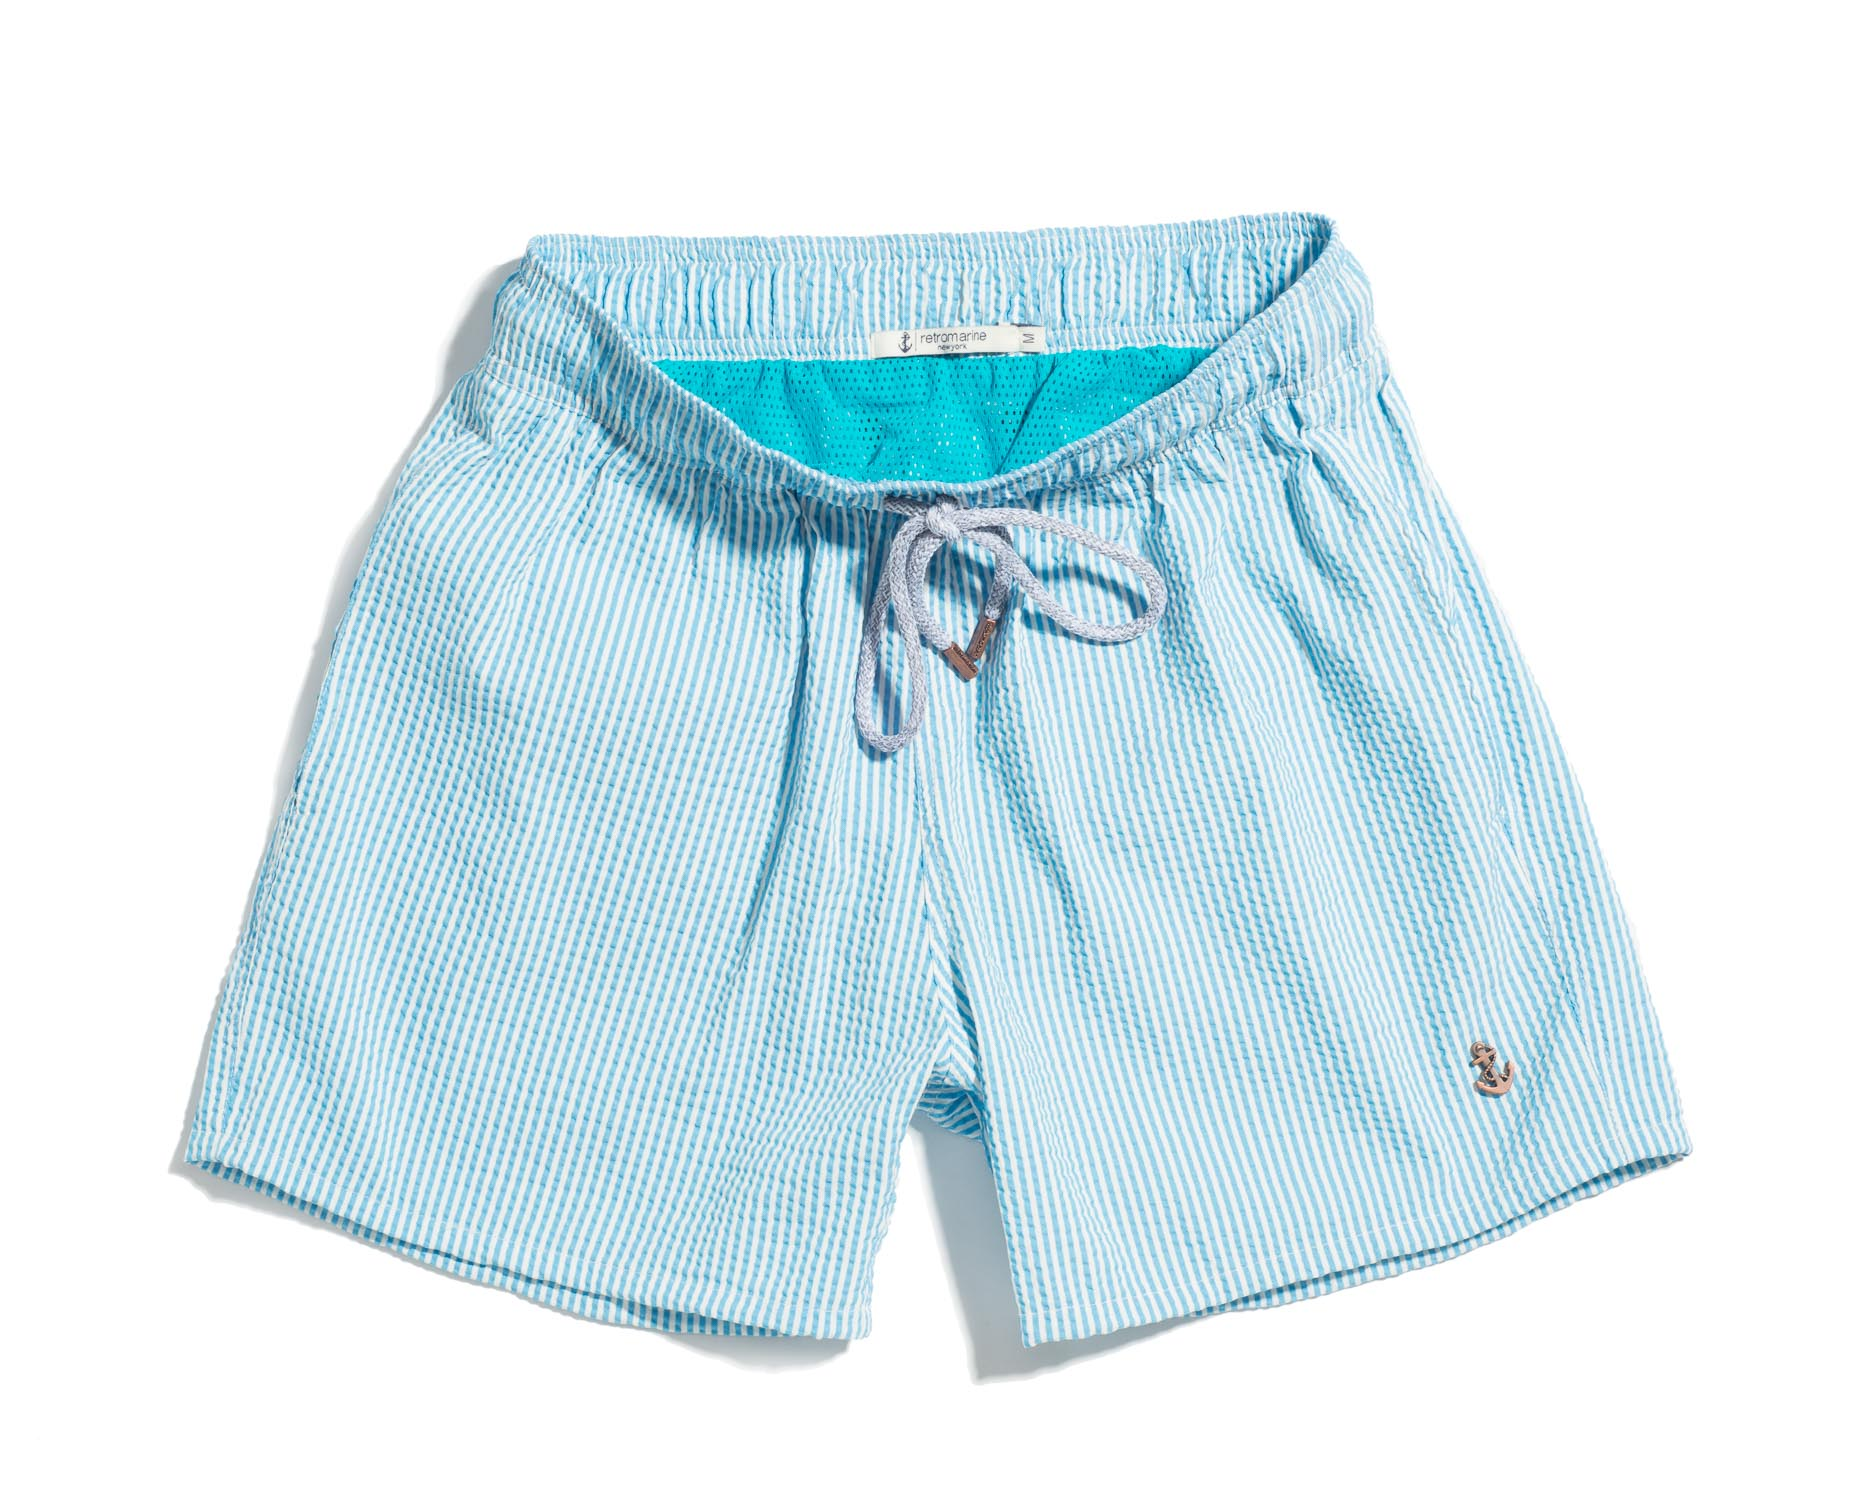 Blue and White Shorts-003